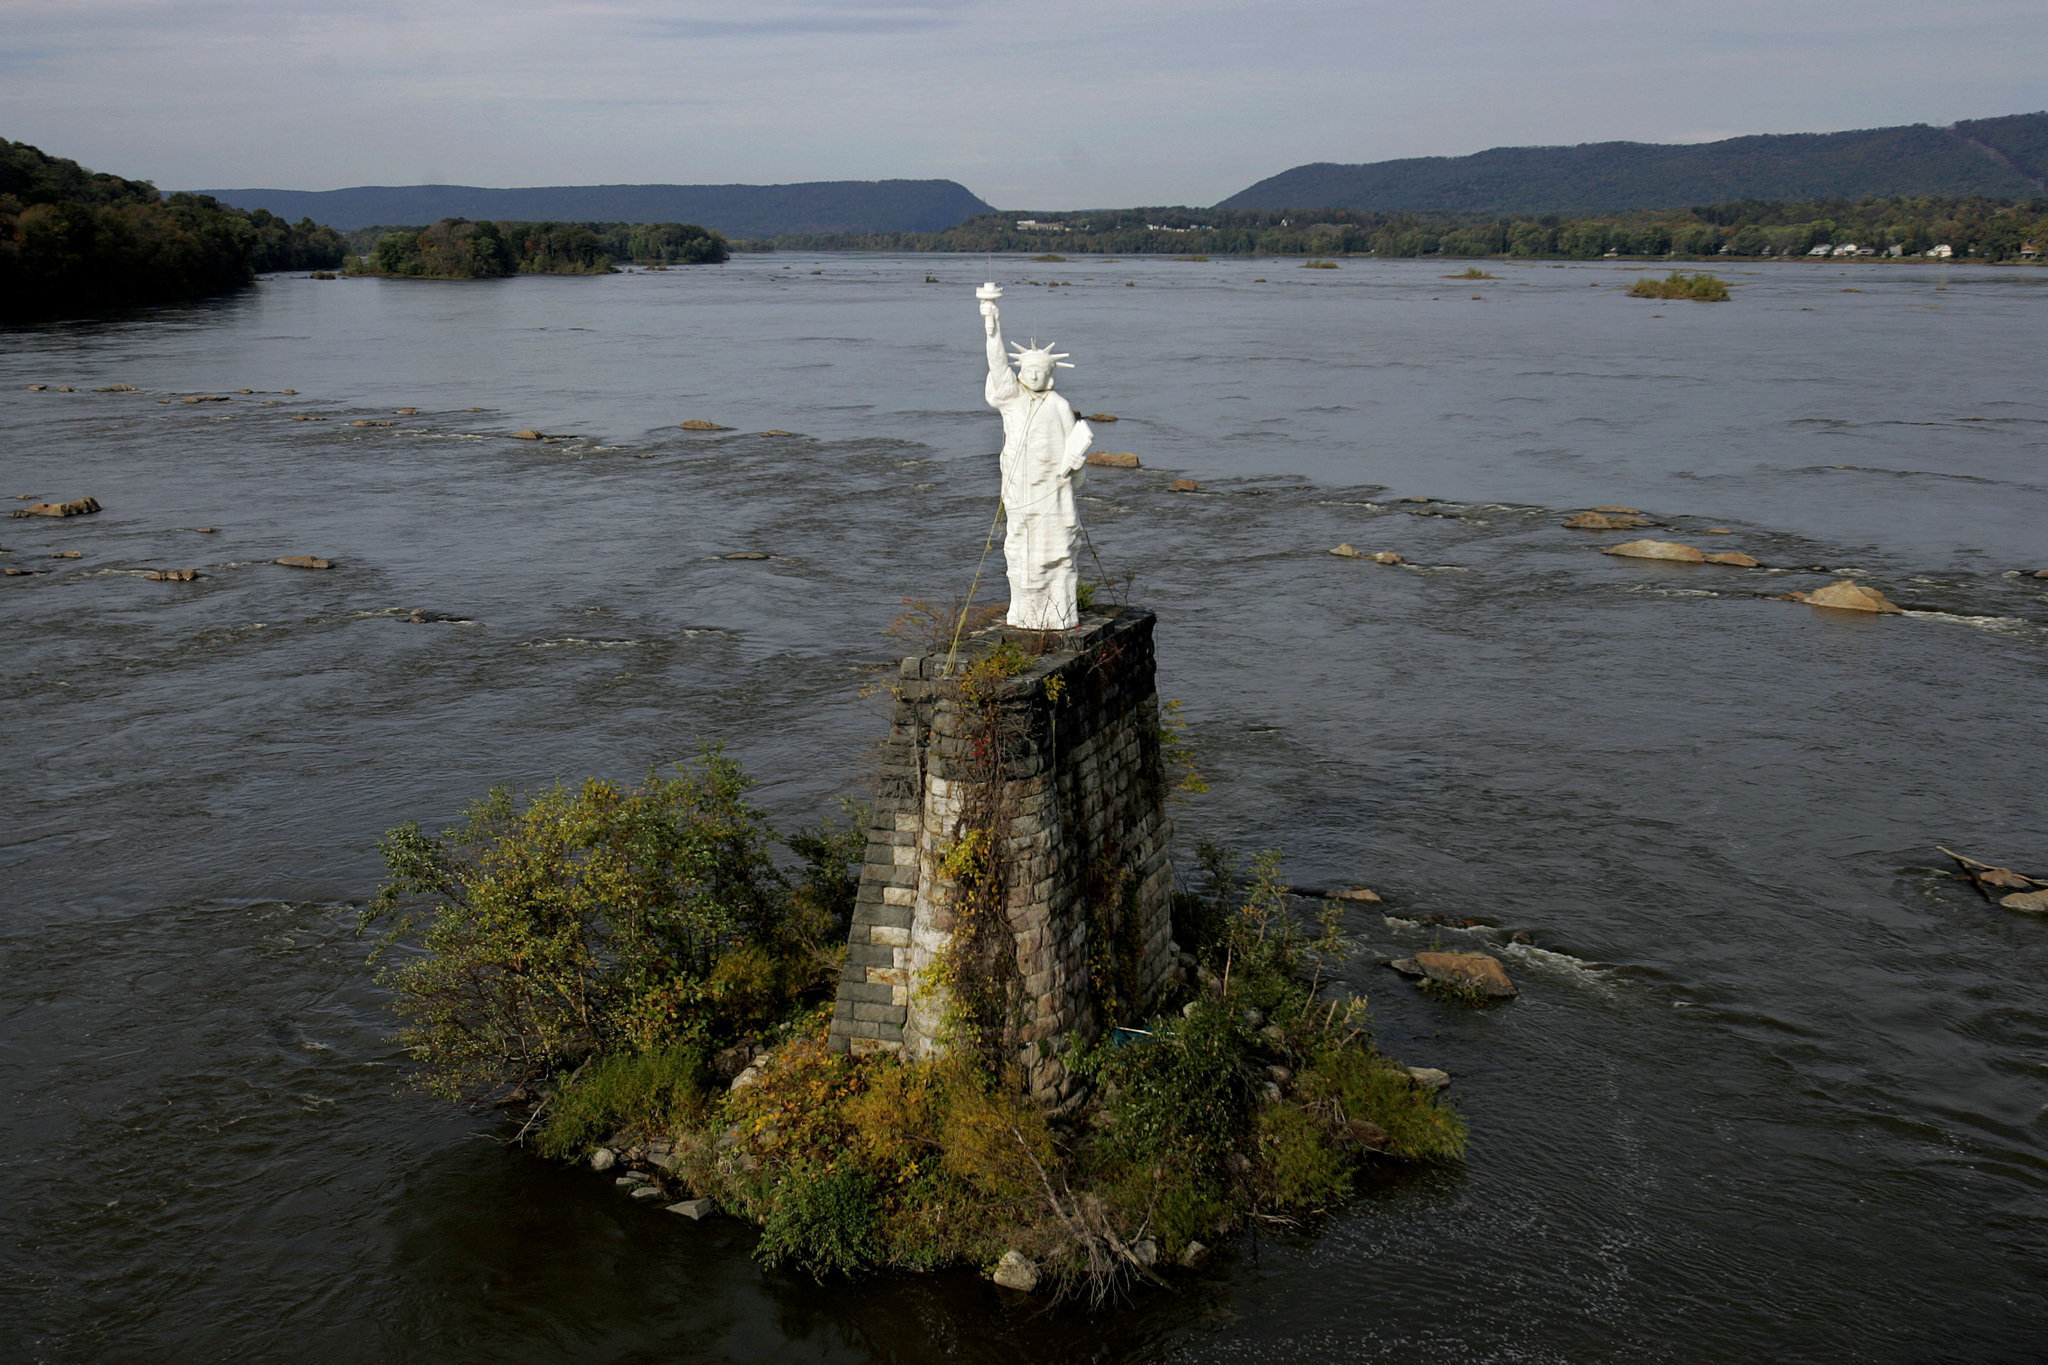 Drawn statue of liberty fallen To an 1986 Susquehanna onto